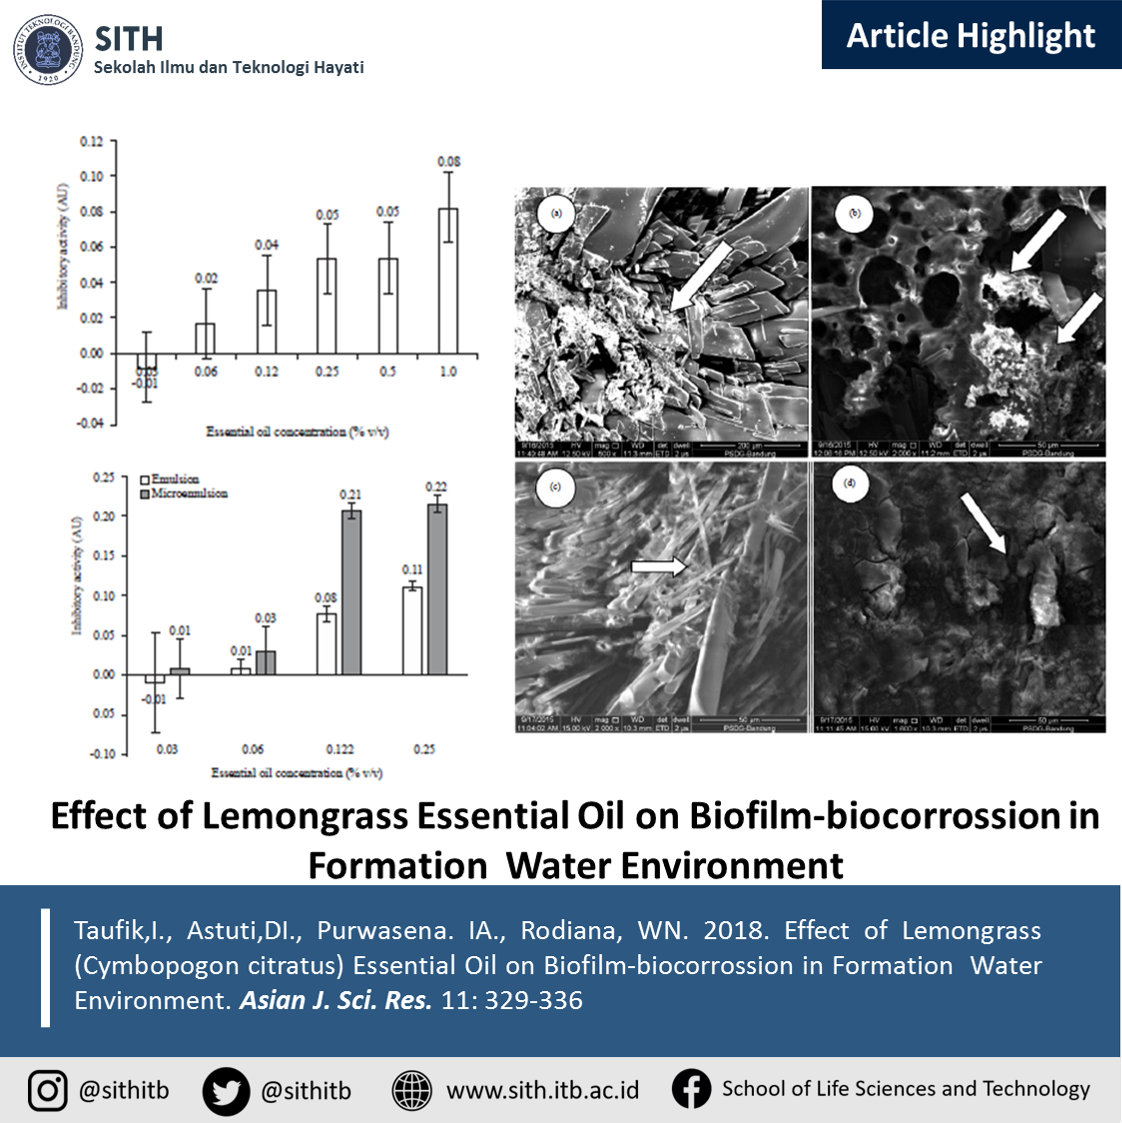 Effect of Lemongrass (Cymbopogon citratus) Essential Oil on Biofilm-biocorrossion in Formation Water Environment